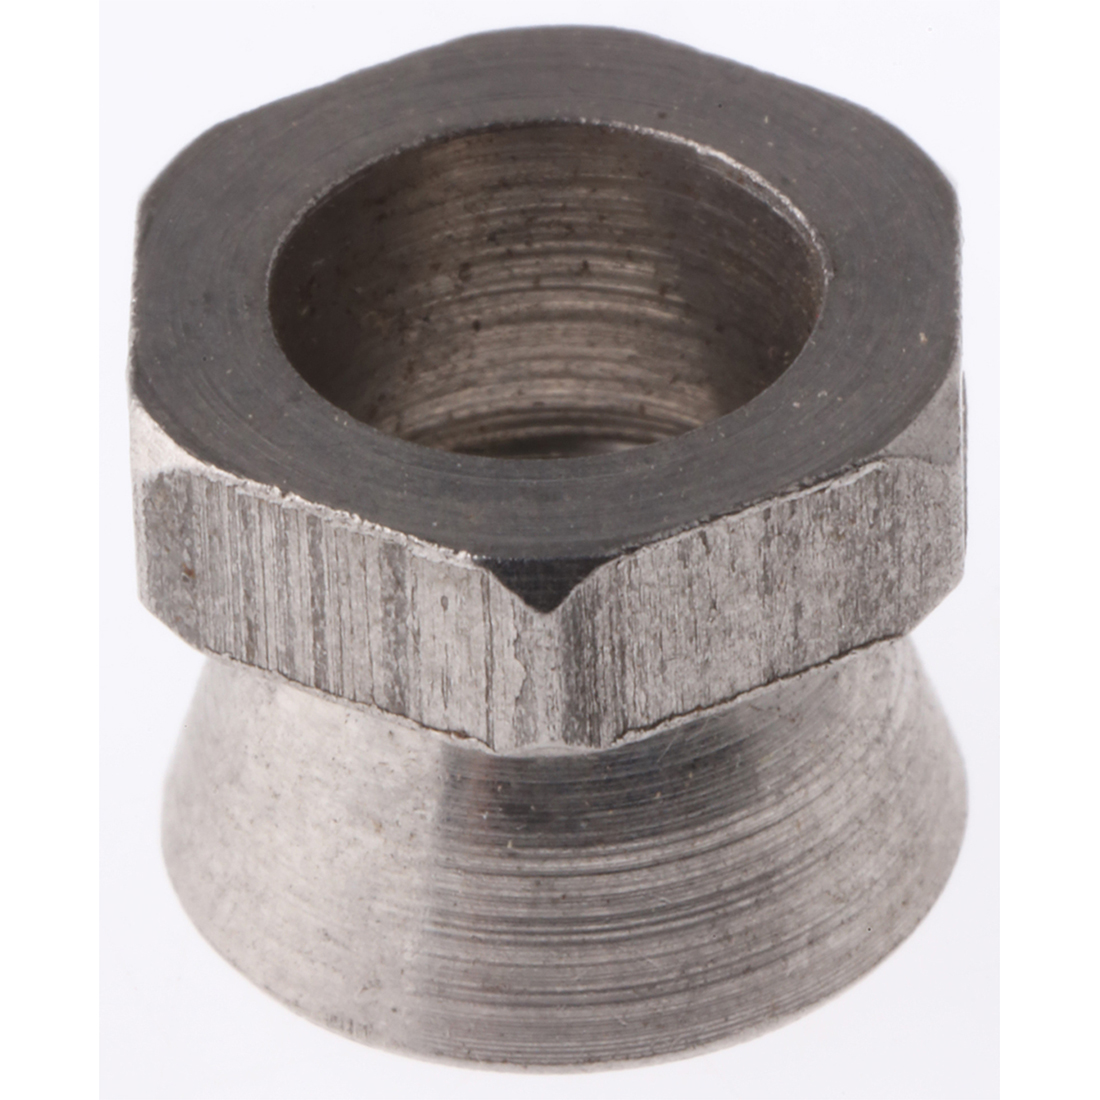 18Nm Plain Stainless Steel Shear Nut, M8 - 10 Pack